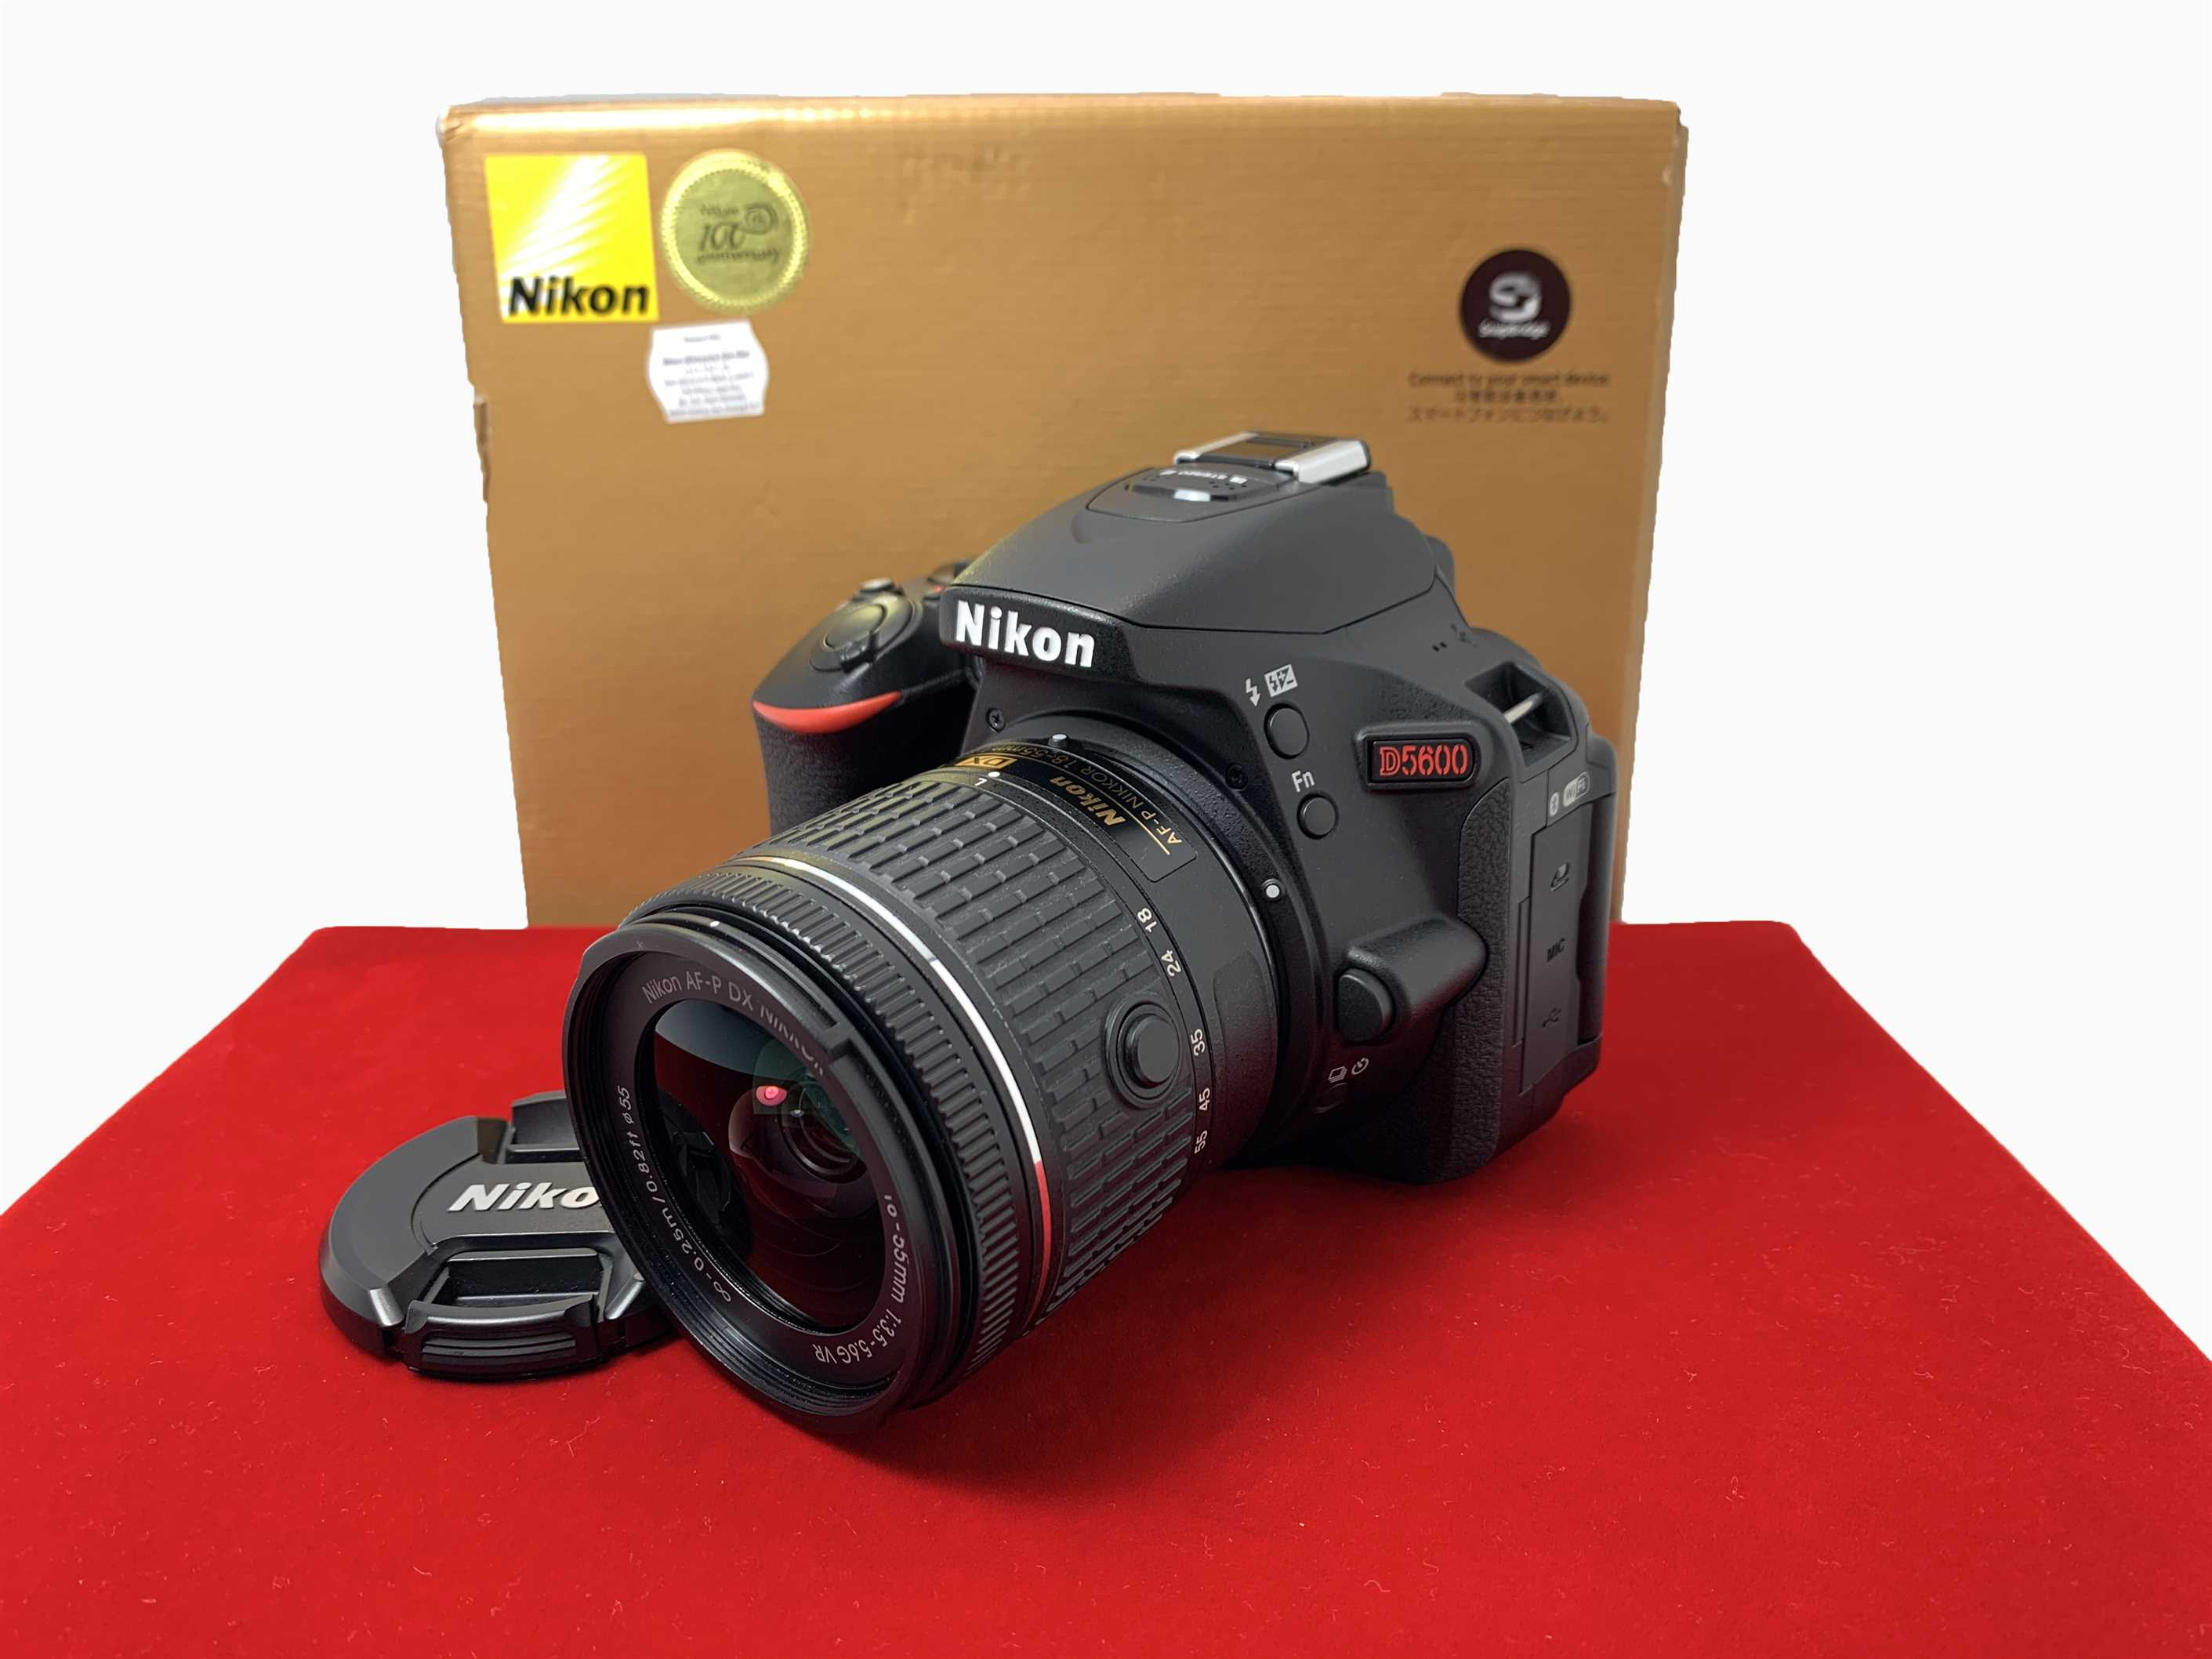 [USED-PJ33] Nikon D5600 with 18-55MM F3.5-5.6 DX AFP Lens,95% Like New Condition (S/N:8212851)